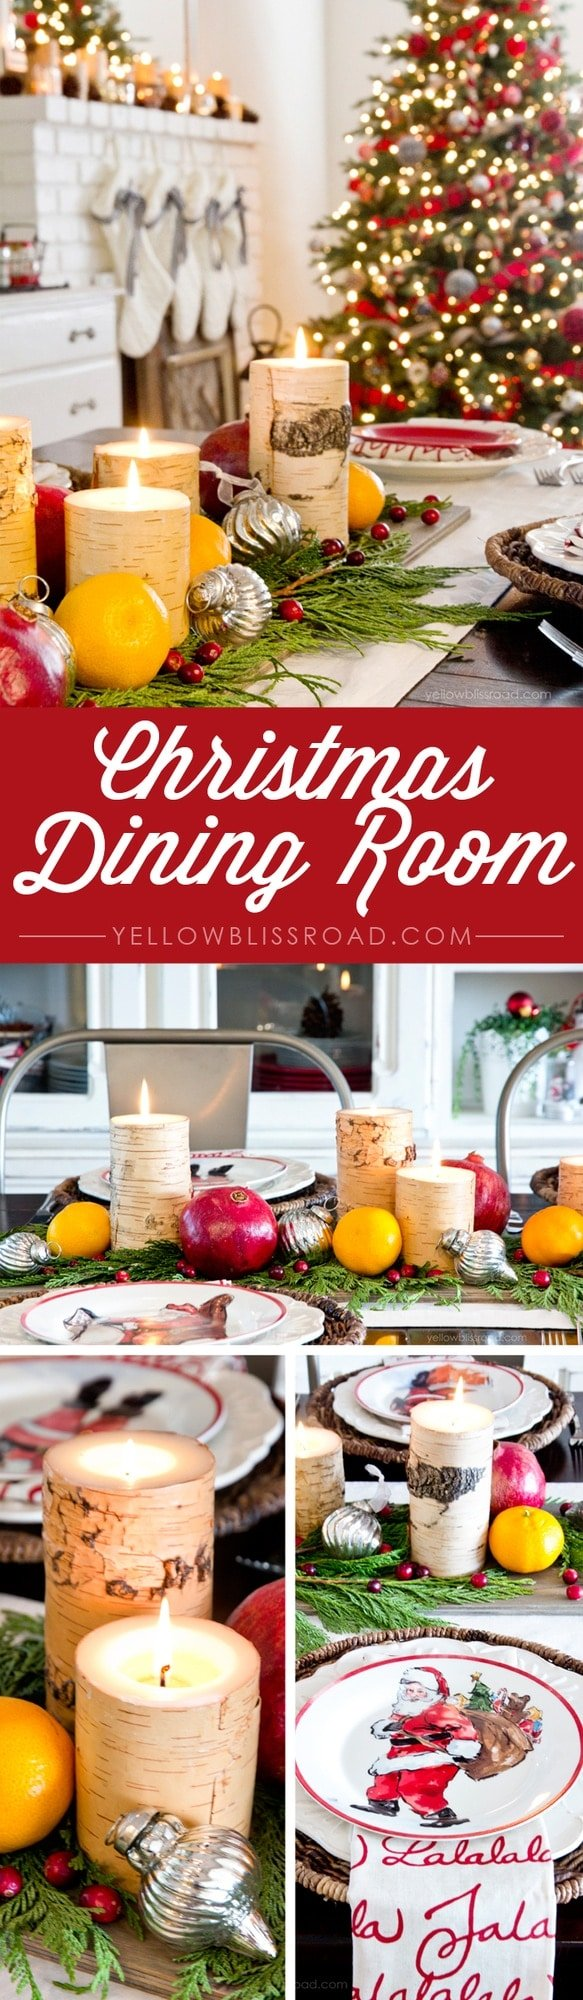 Rustic and Fresh Christmas Dining Room Decor